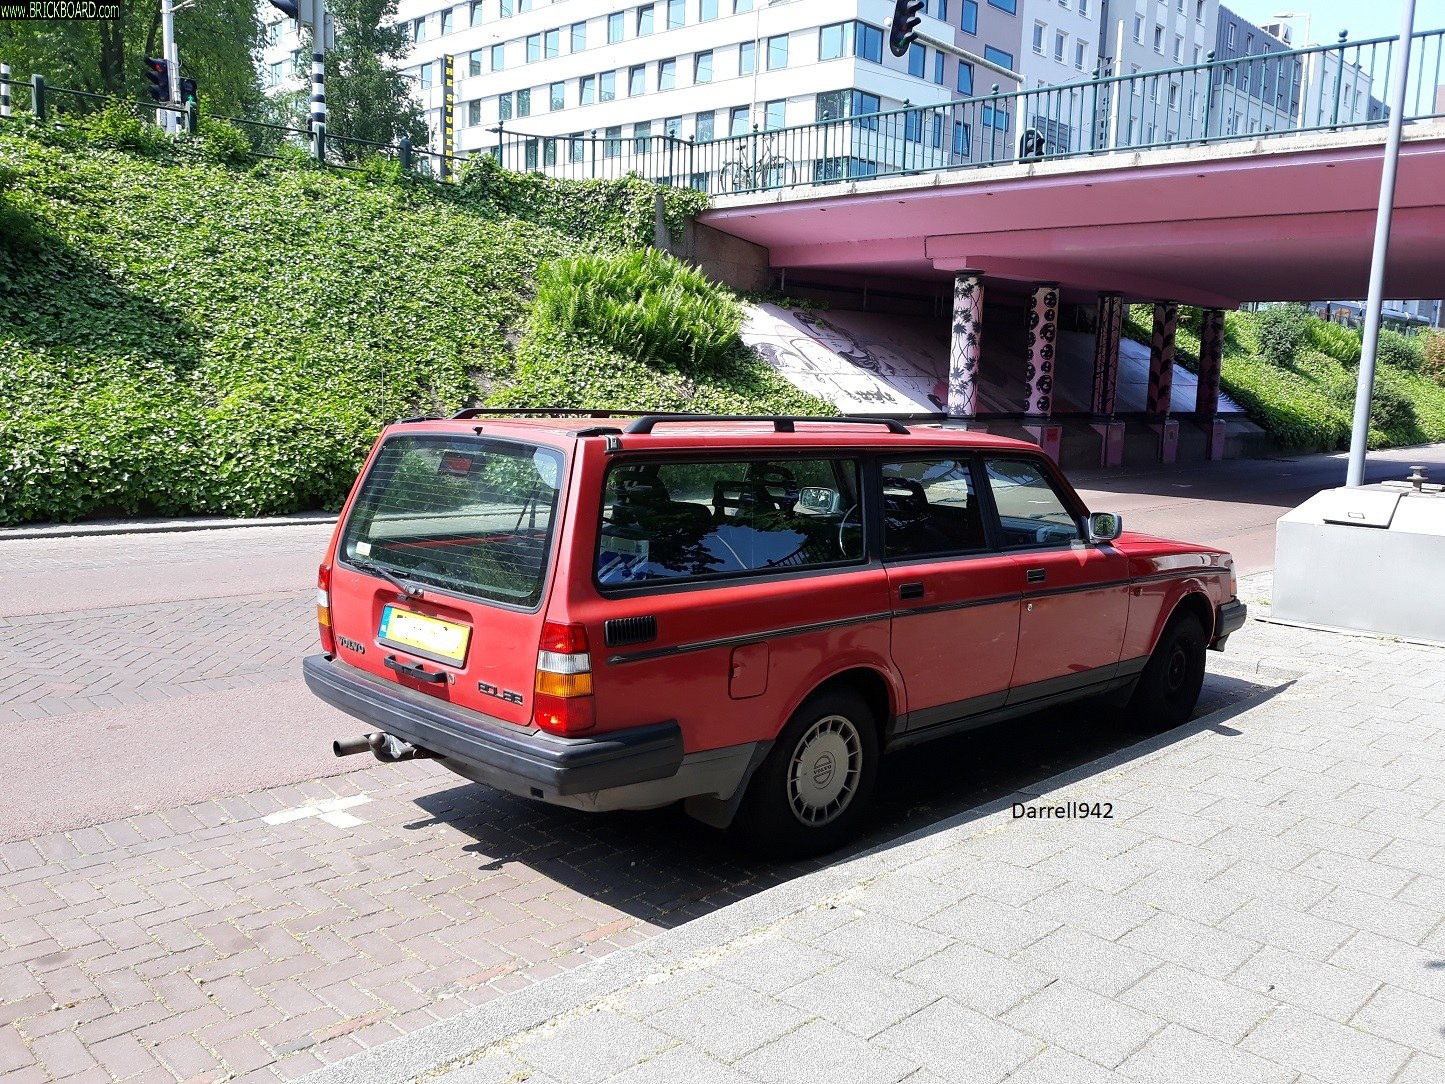 Volvo 200 -- 200 series at Willem Ruyslaan Bridge